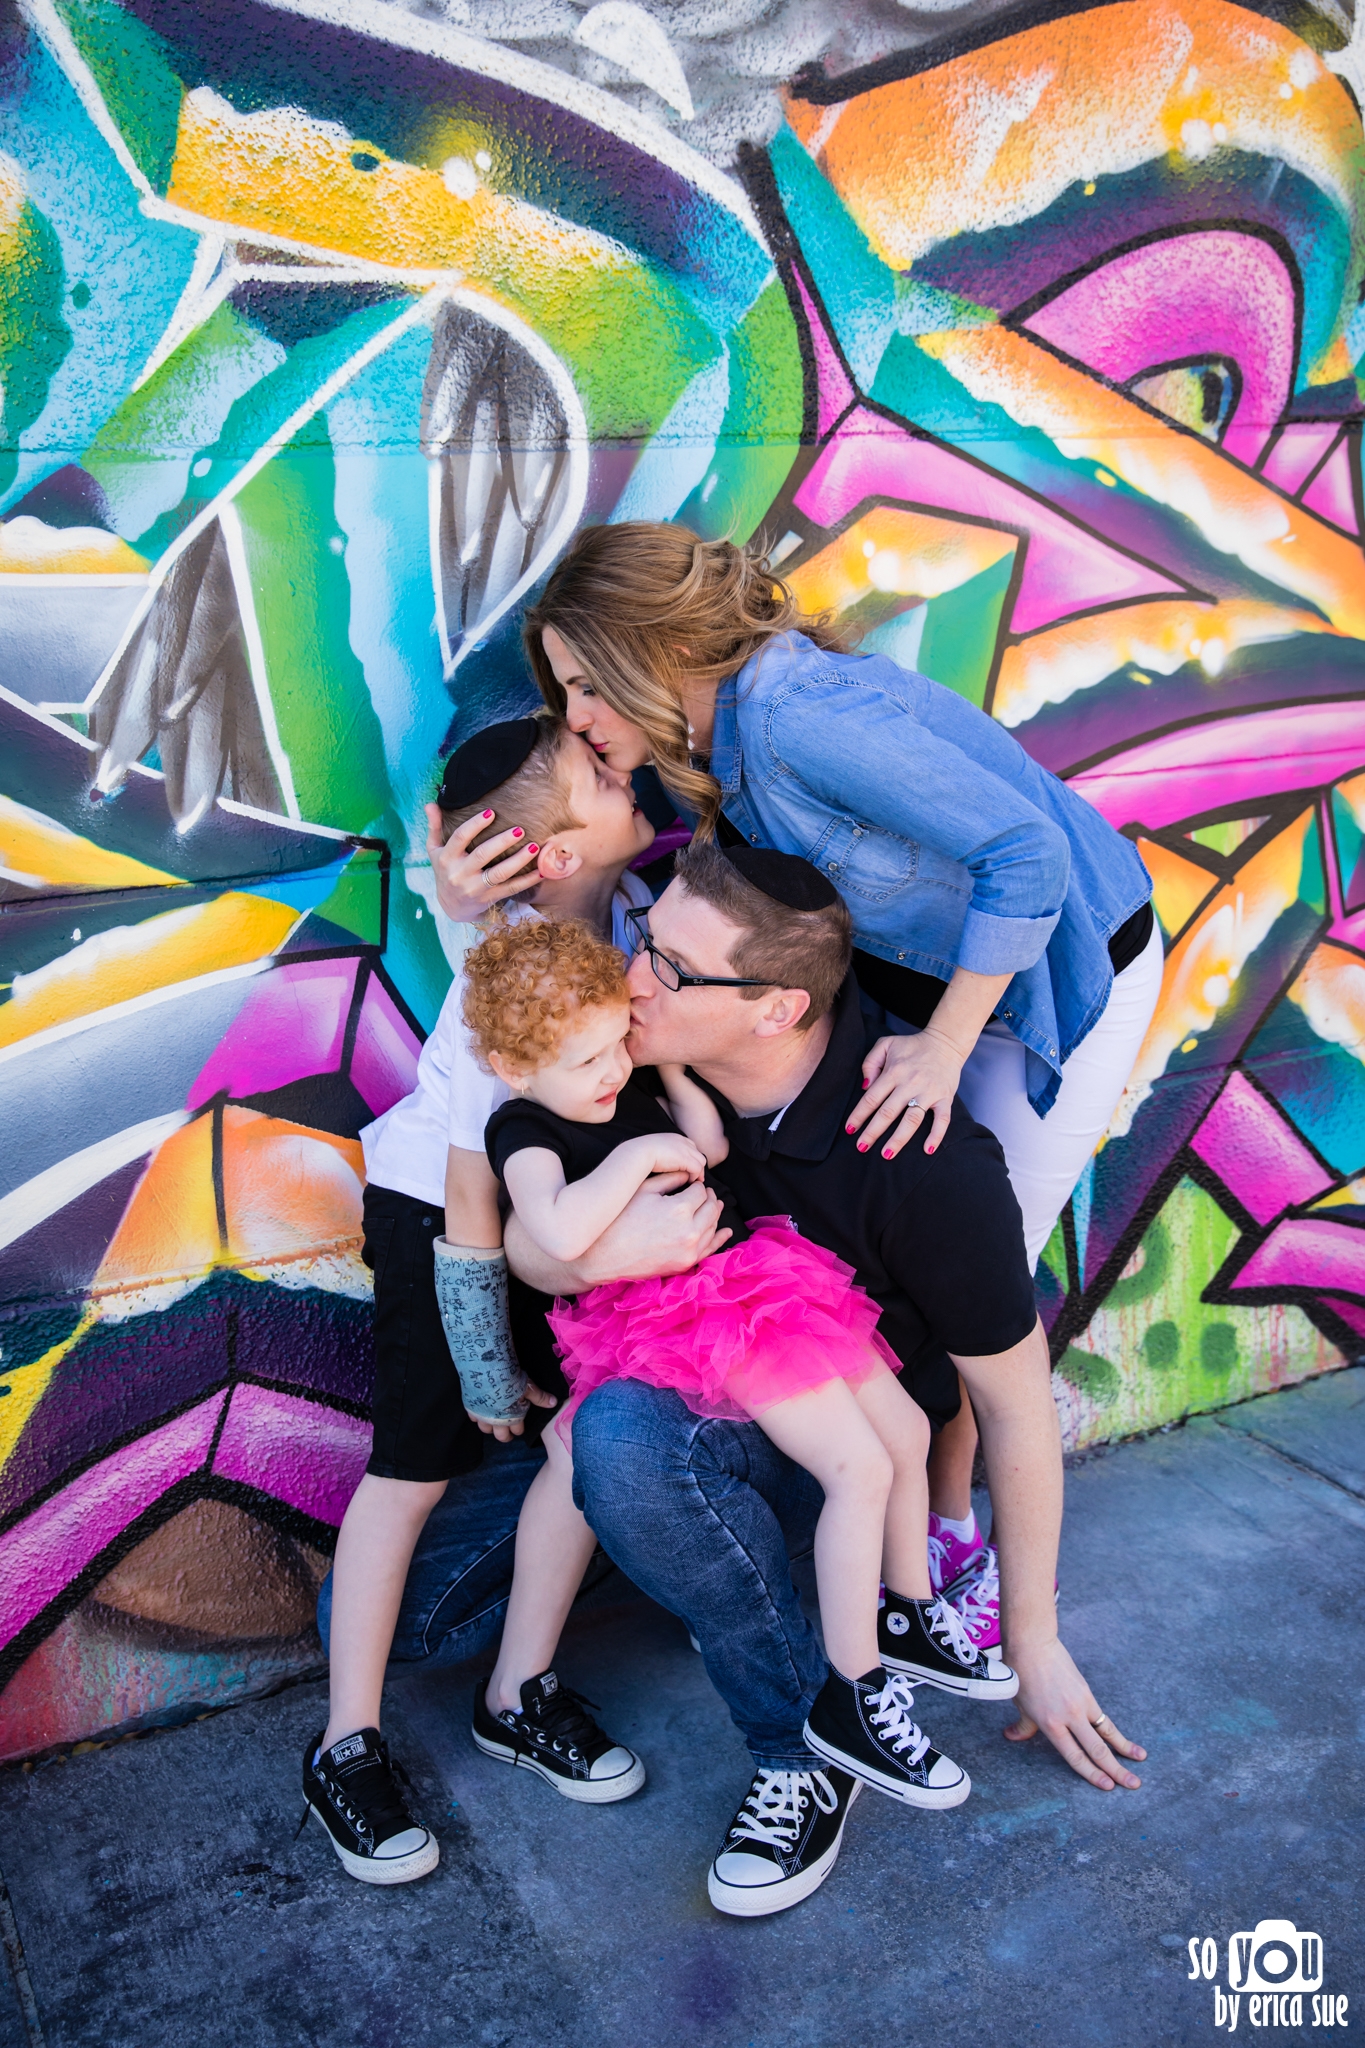 wynwood-family-photography-so-you-by-erica-sue-ft-lauderdale-davie-miami-fl-florida-2676.jpg